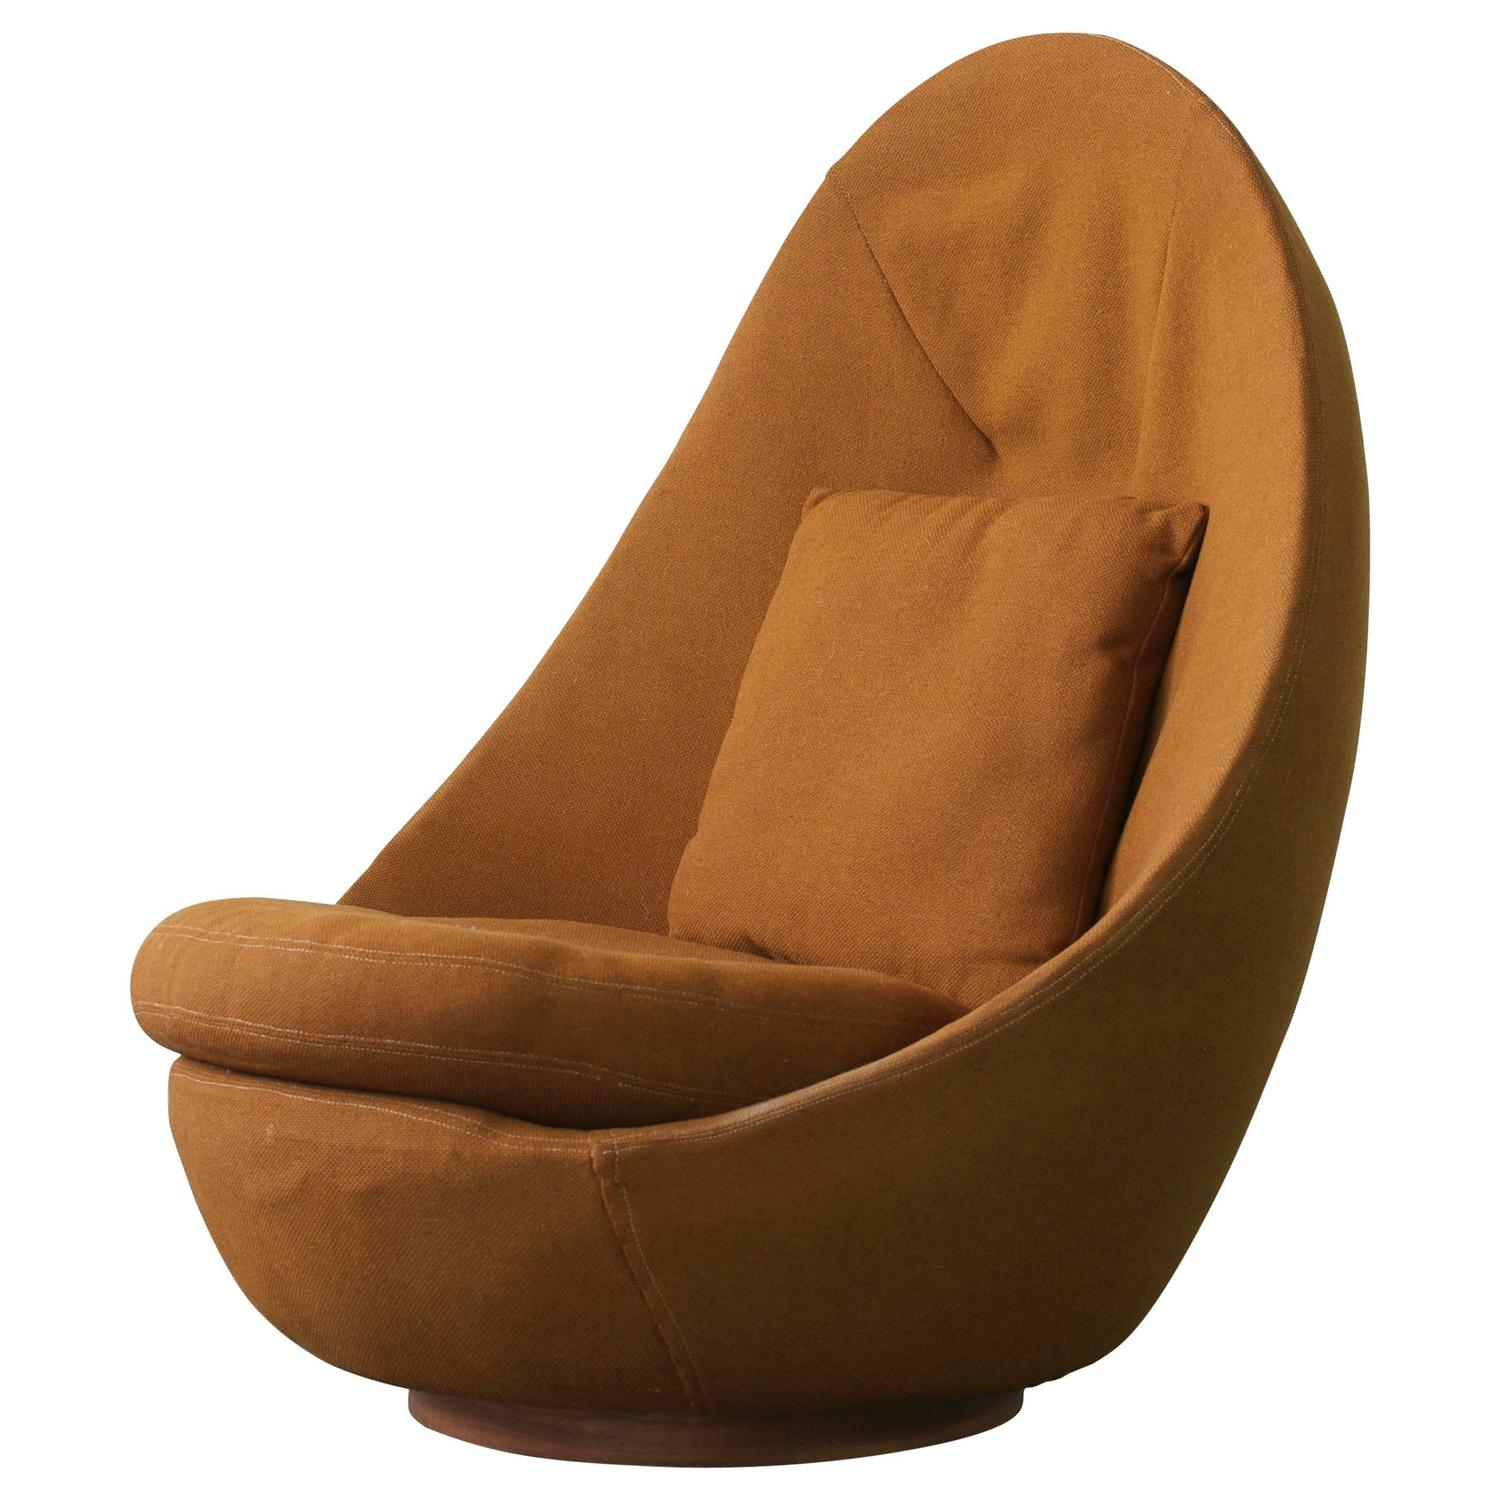 Rare Scale Milo Baughman Swivel Chair For Sale at